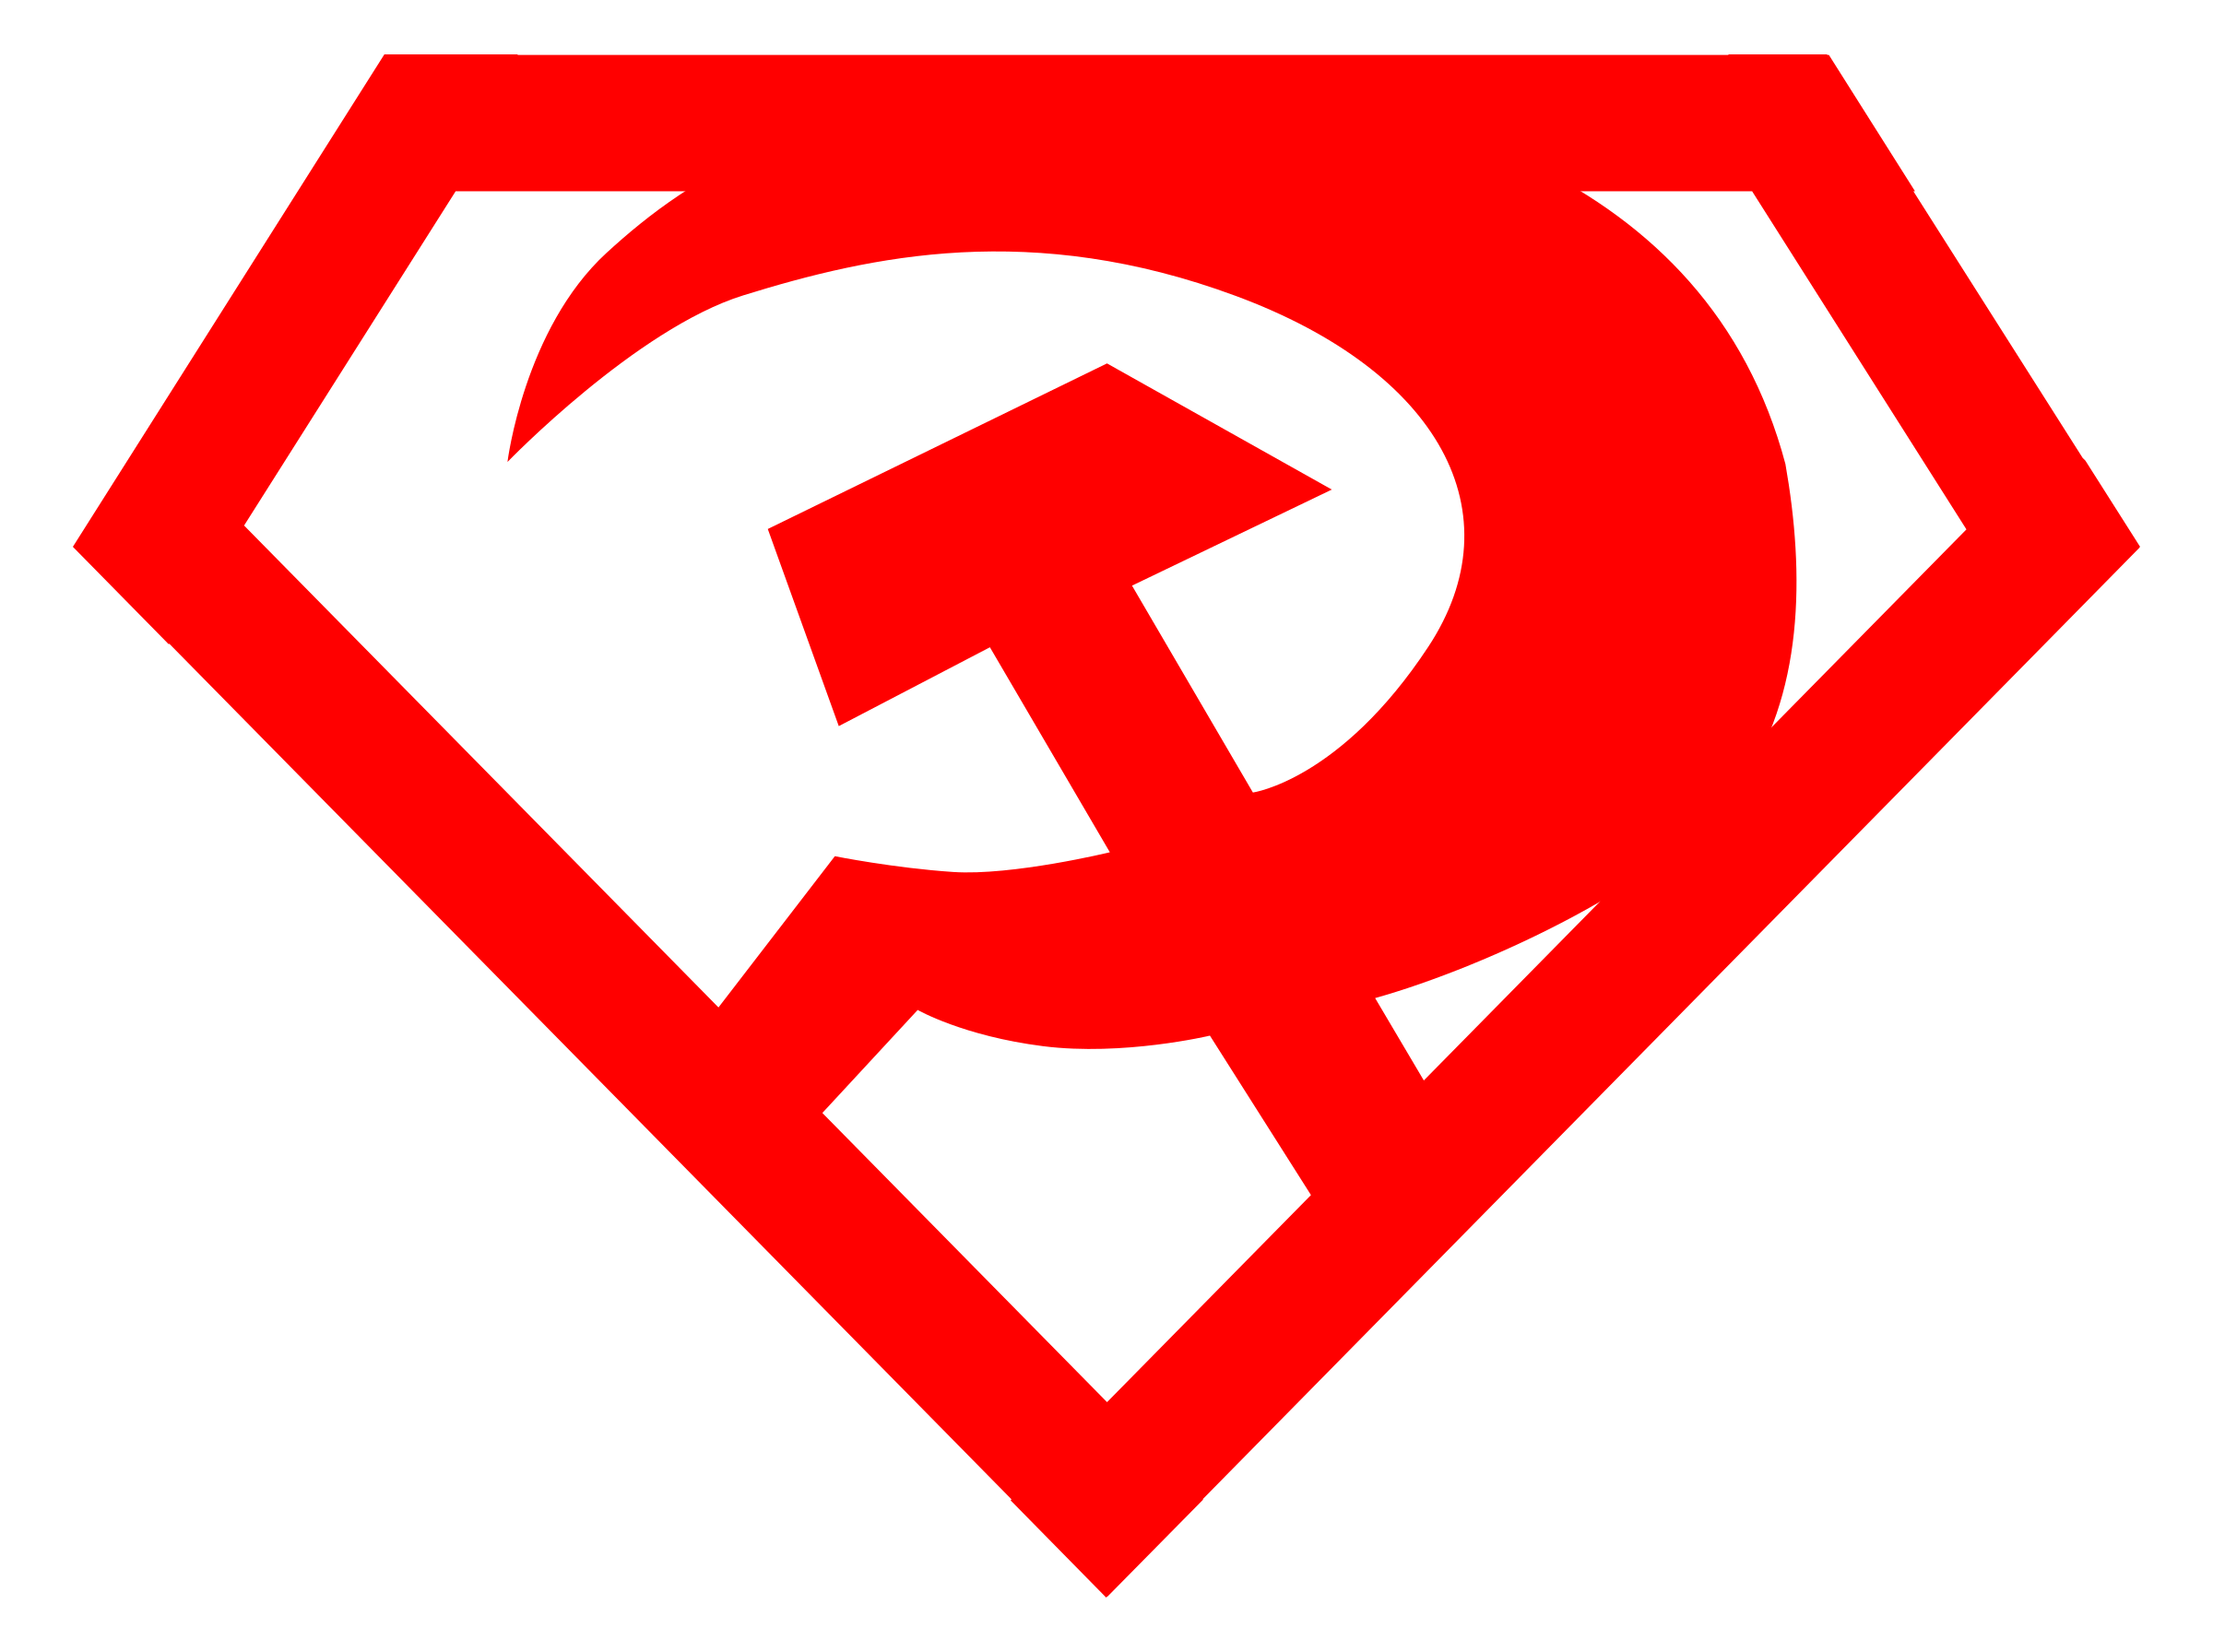 super comrade by worker